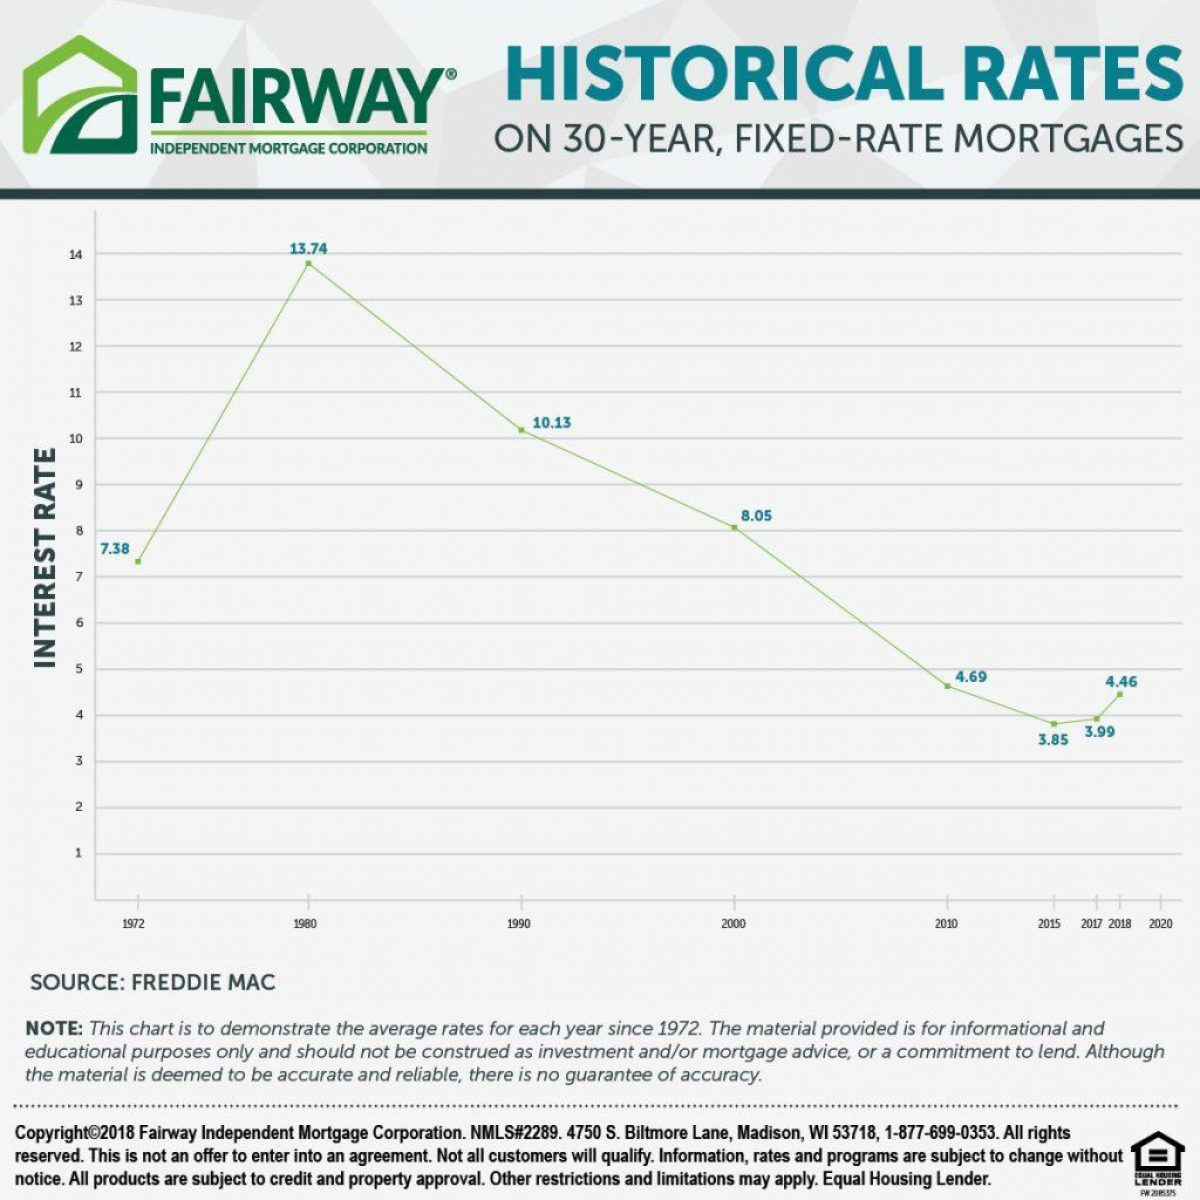 Fairway Historical Rates